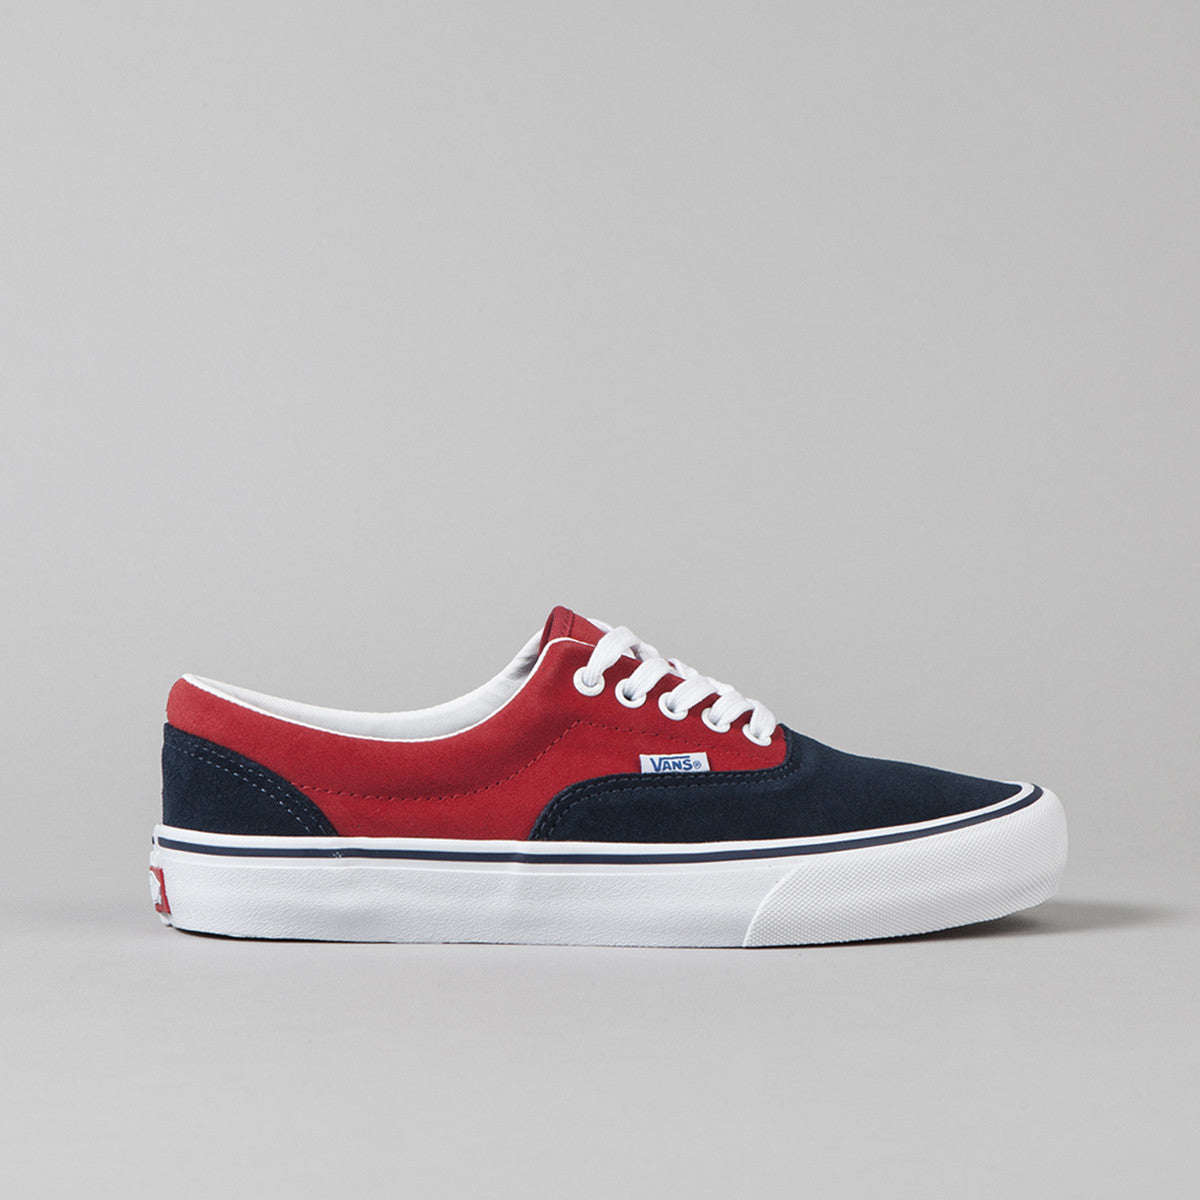 Vans 50th Era Pro '76 Shoes